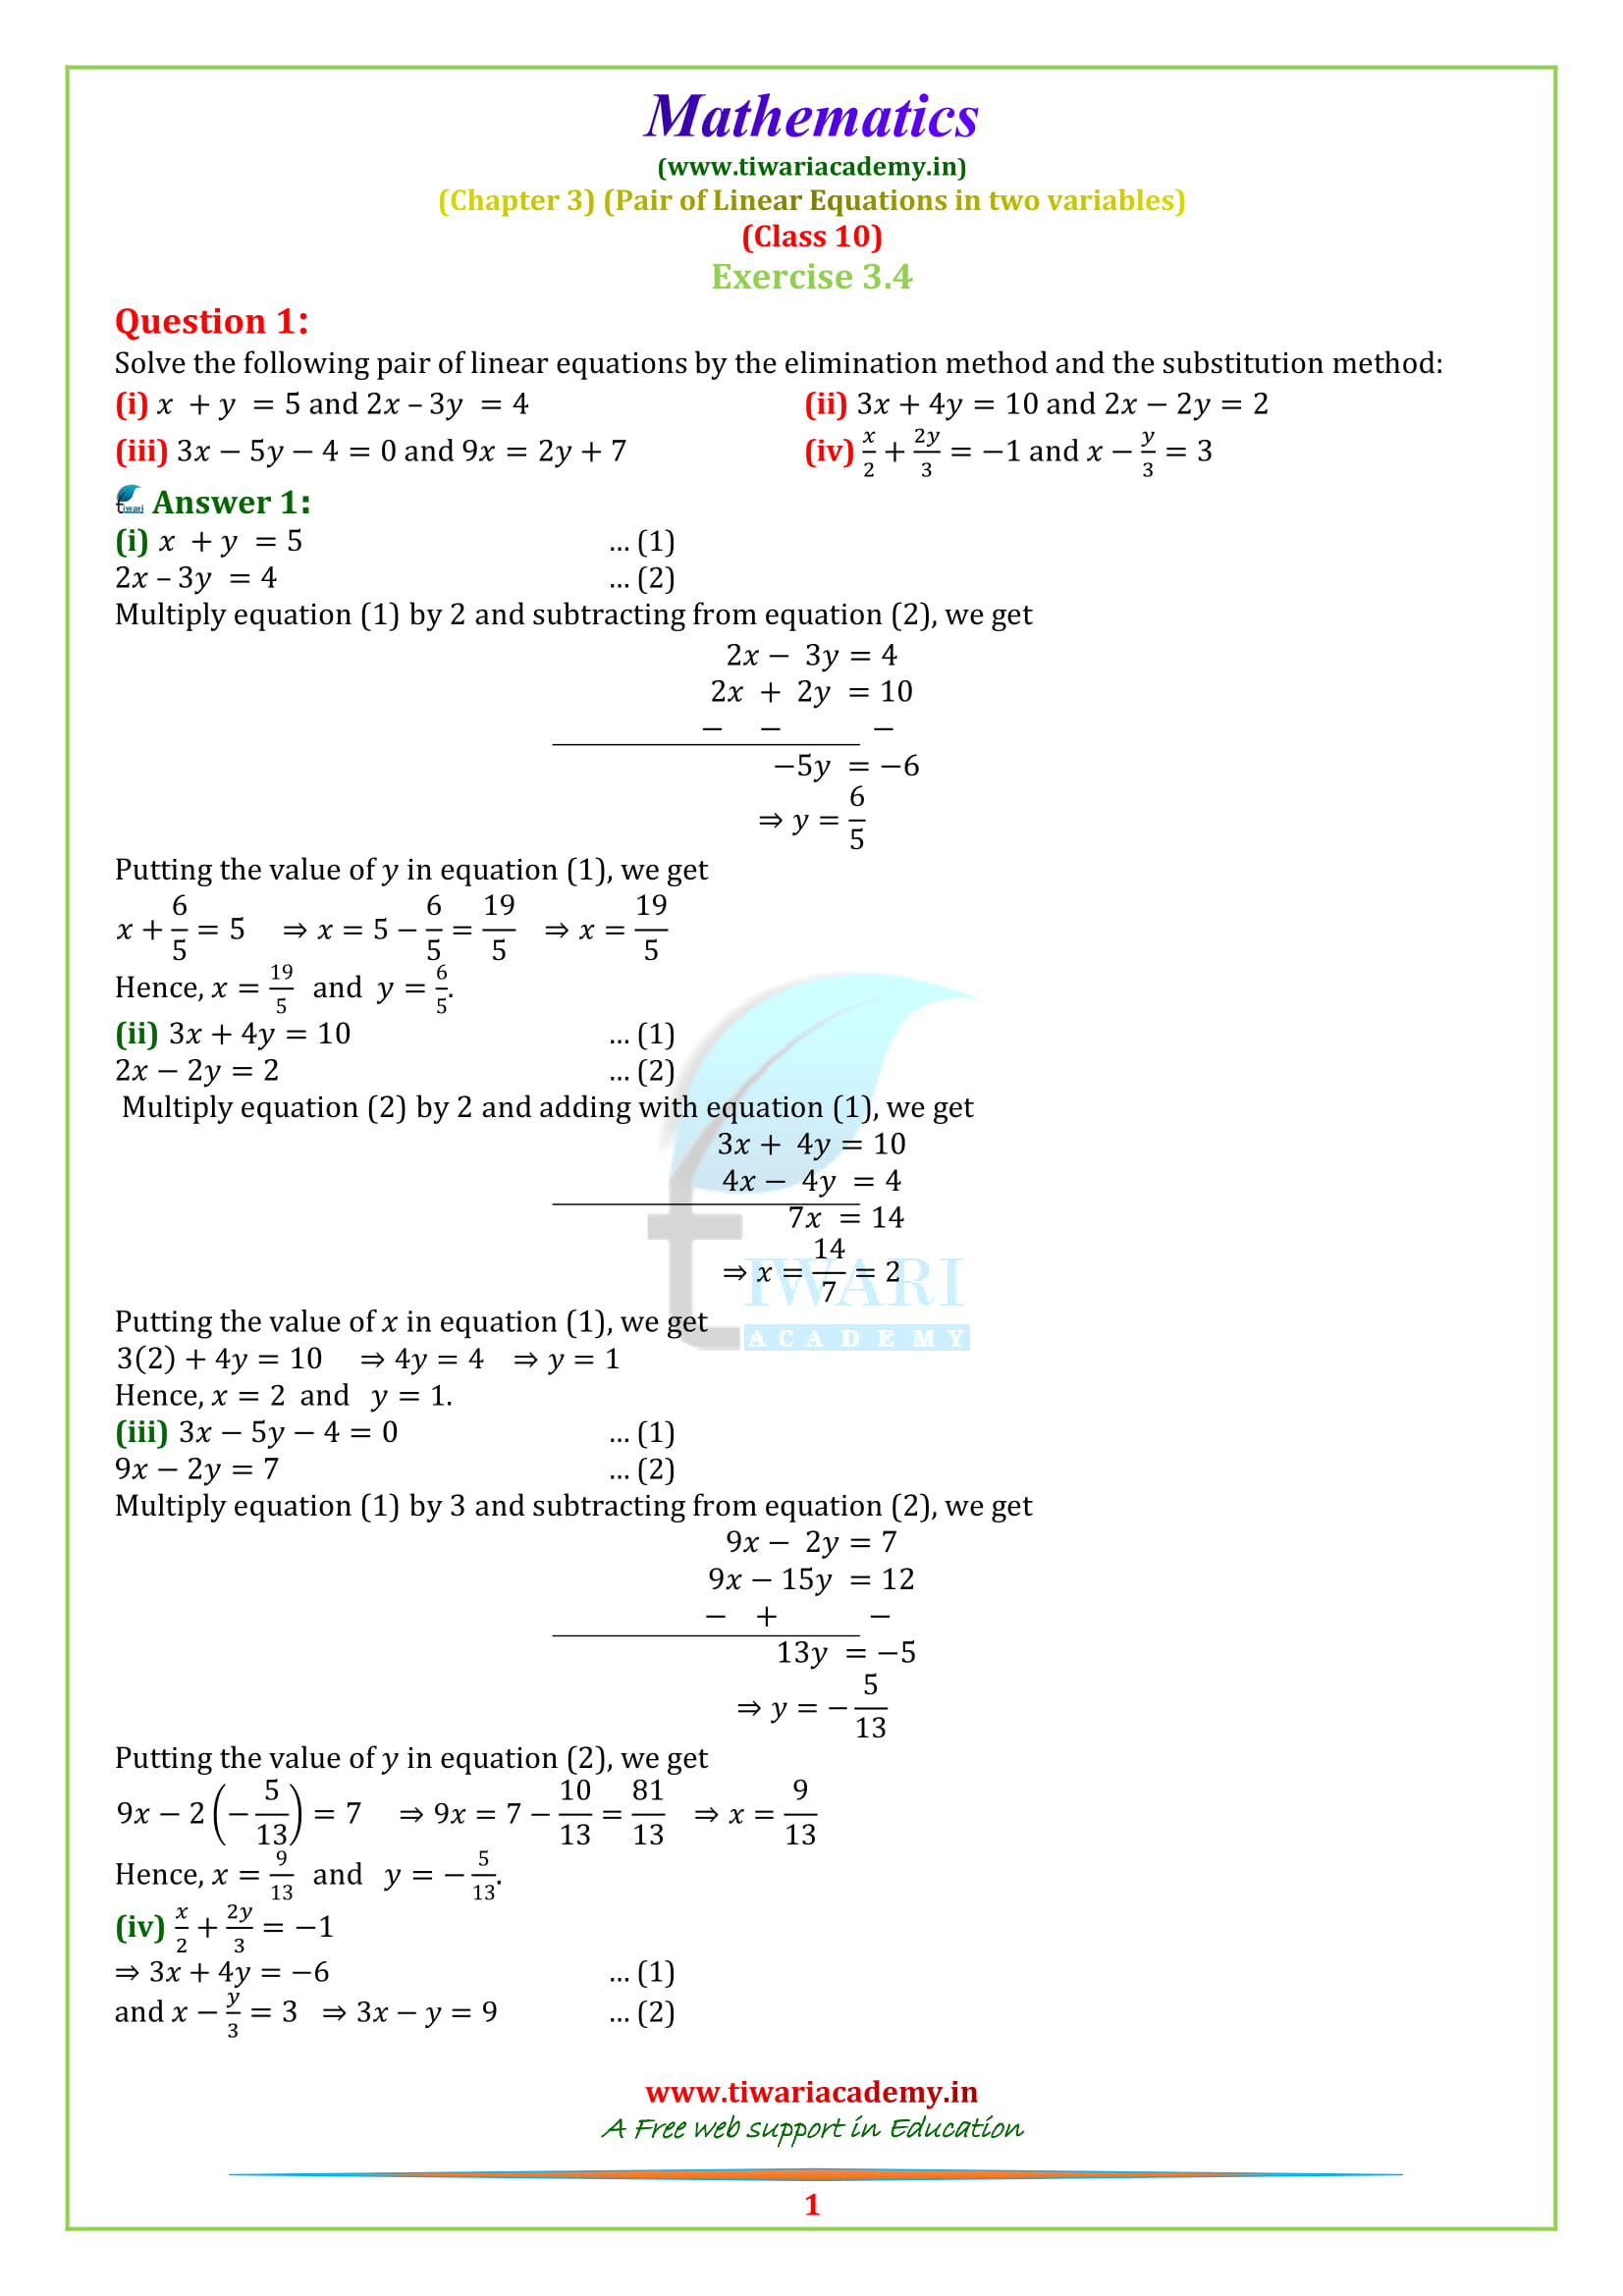 NCERT Solutions for Class 10 Maths Chapter 3 Exercise 3.4 questiion 1